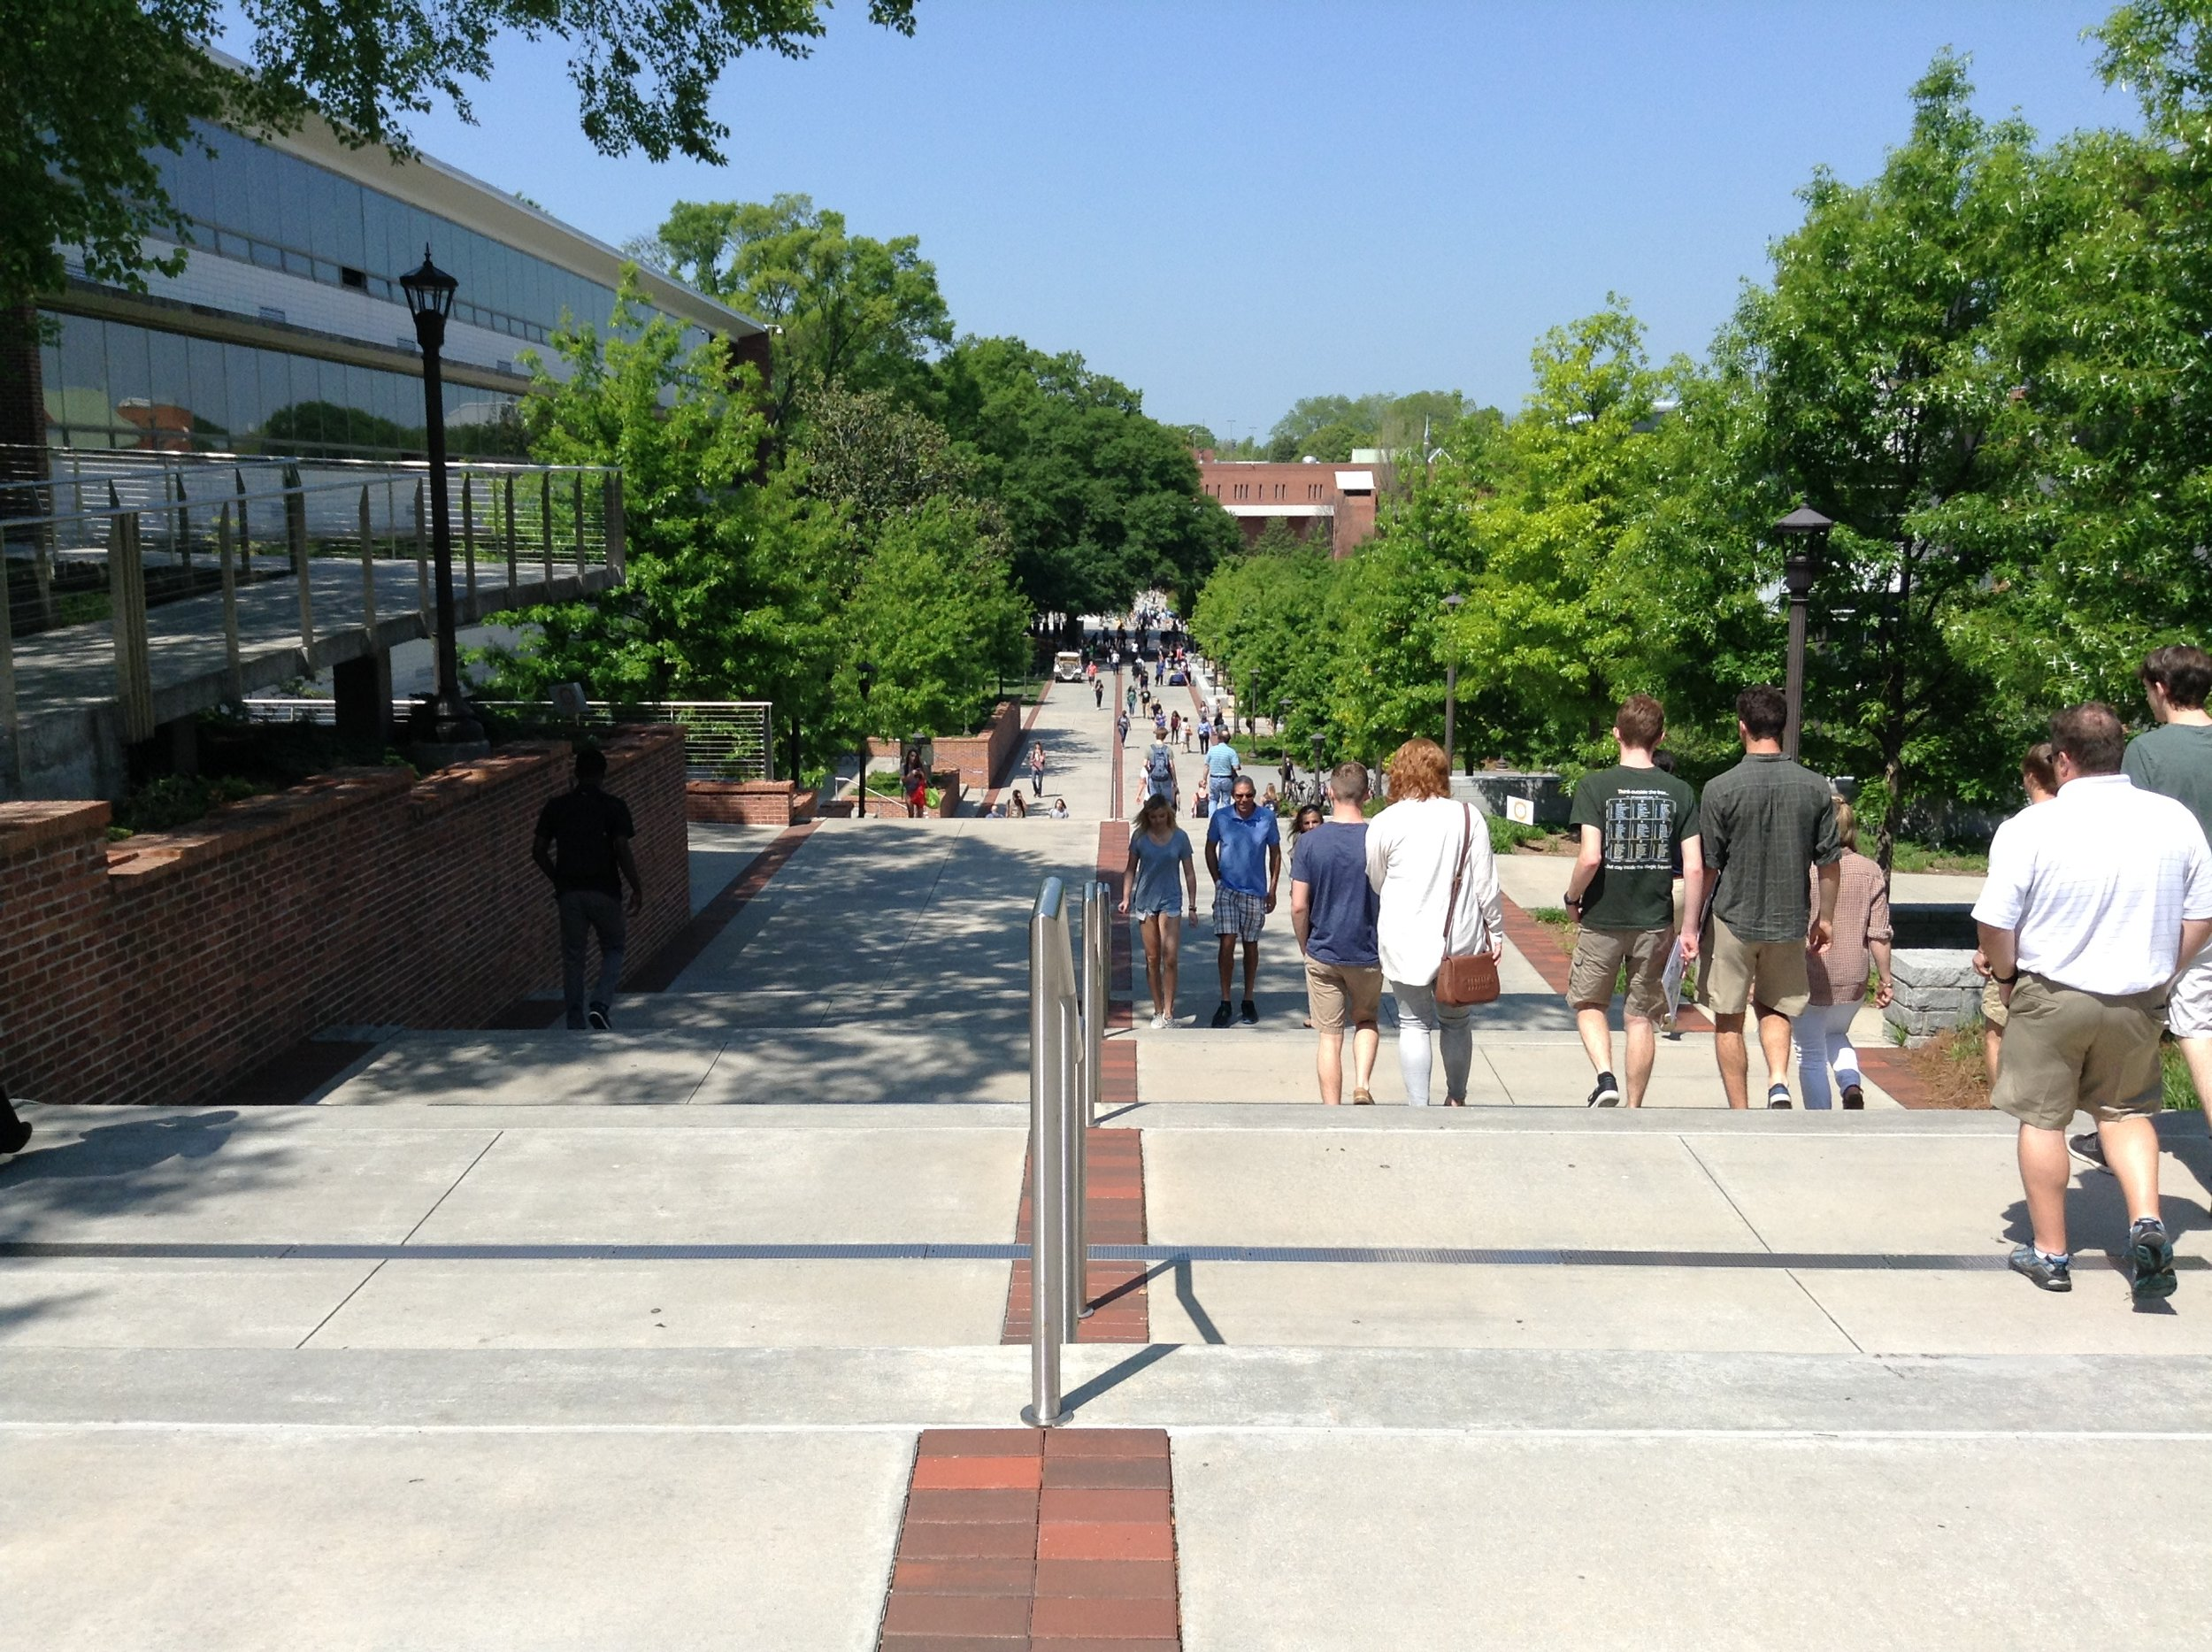 GEORGIA TECH'S MAIN WALK